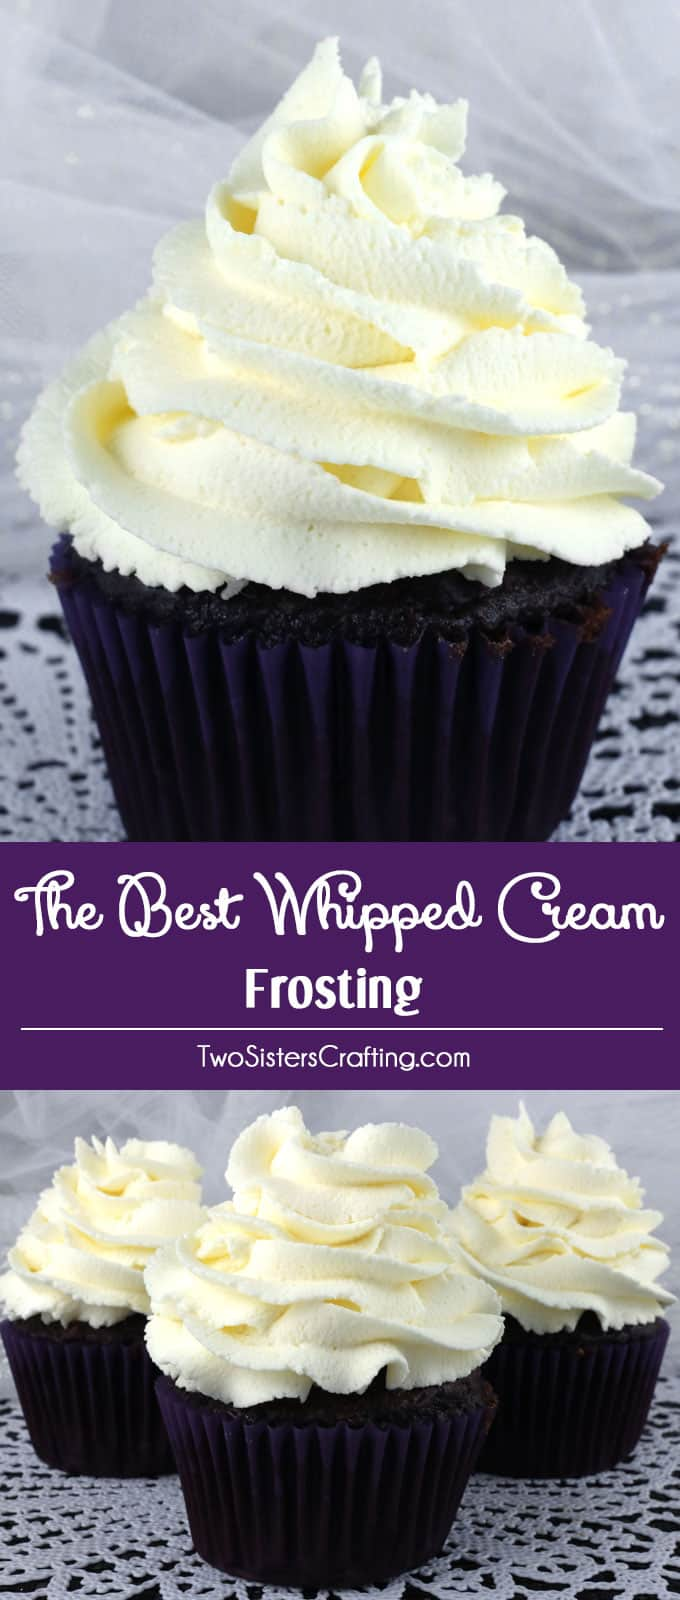 Delicious whipped cream frosting